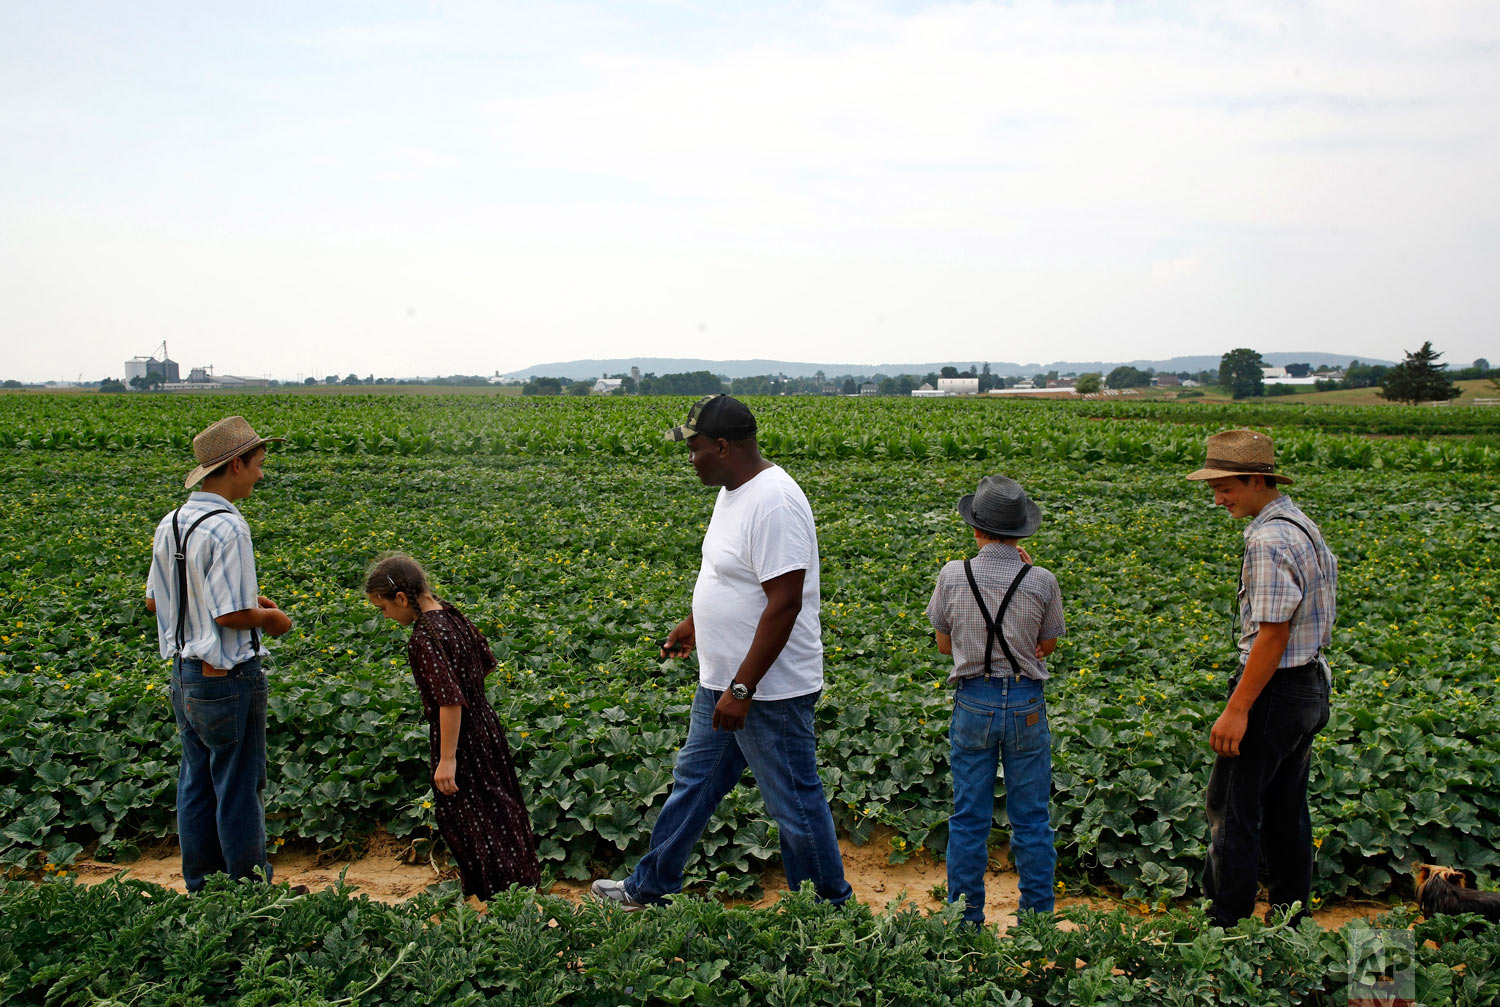 James Chase, center, the leader of a Baltimore arabber stable, walks in a field with children belonging to an Old Order Mennonite family on June 18, 2018, at the family's farm in New Holland, Pennsylvania. (AP Photo/Patrick Semansky)